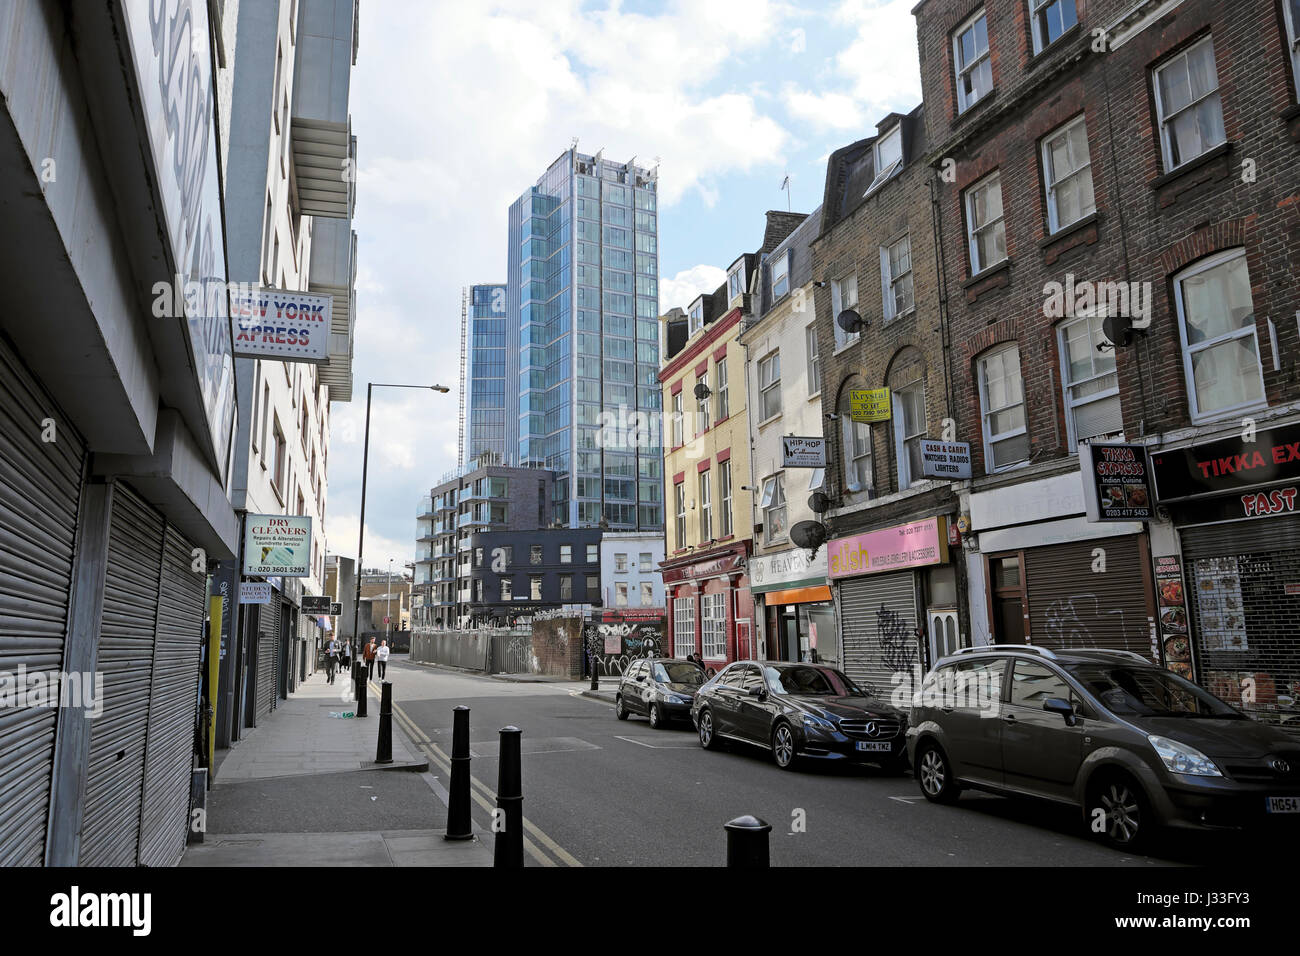 View of old 19th C terraced shops on White Church Lane with view of modern tower block at Goodman's Fields Stepney - Stock Image